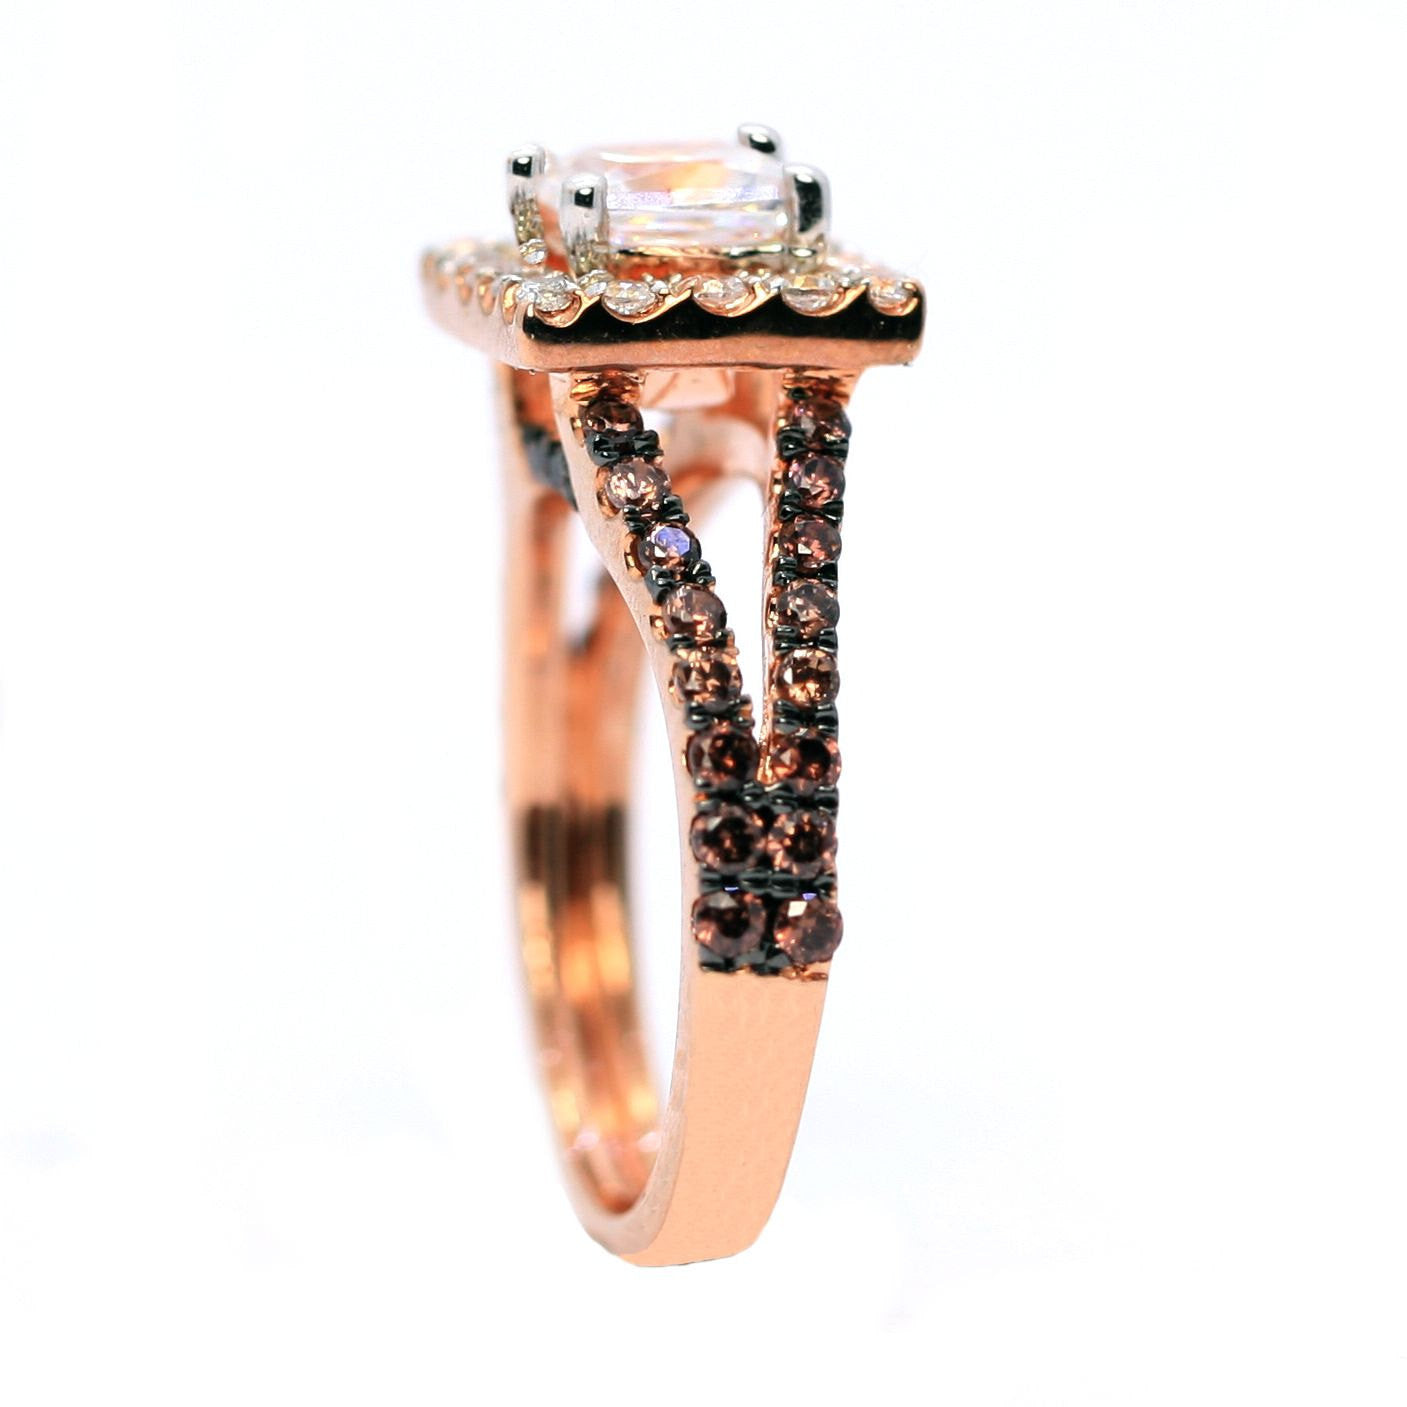 Floating Halo Split Shank Rose Gold, White & Chocolate Color Brown Diamonds,Semi Mount Setting For 1 Carat Princess Cut Diamond  - 94623